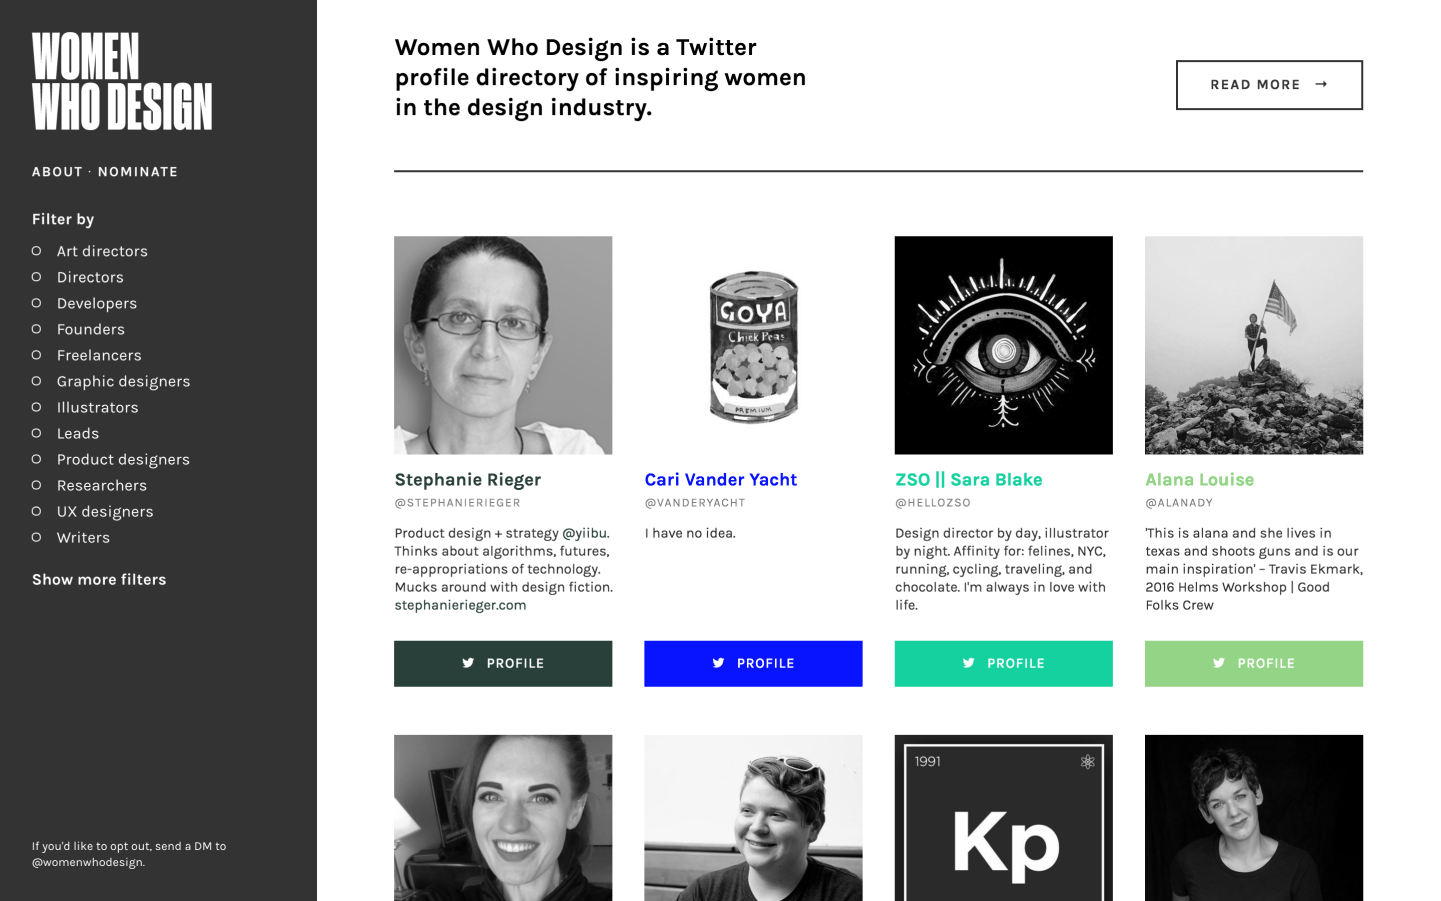 This website shows that to find talented female designers, you just need to look